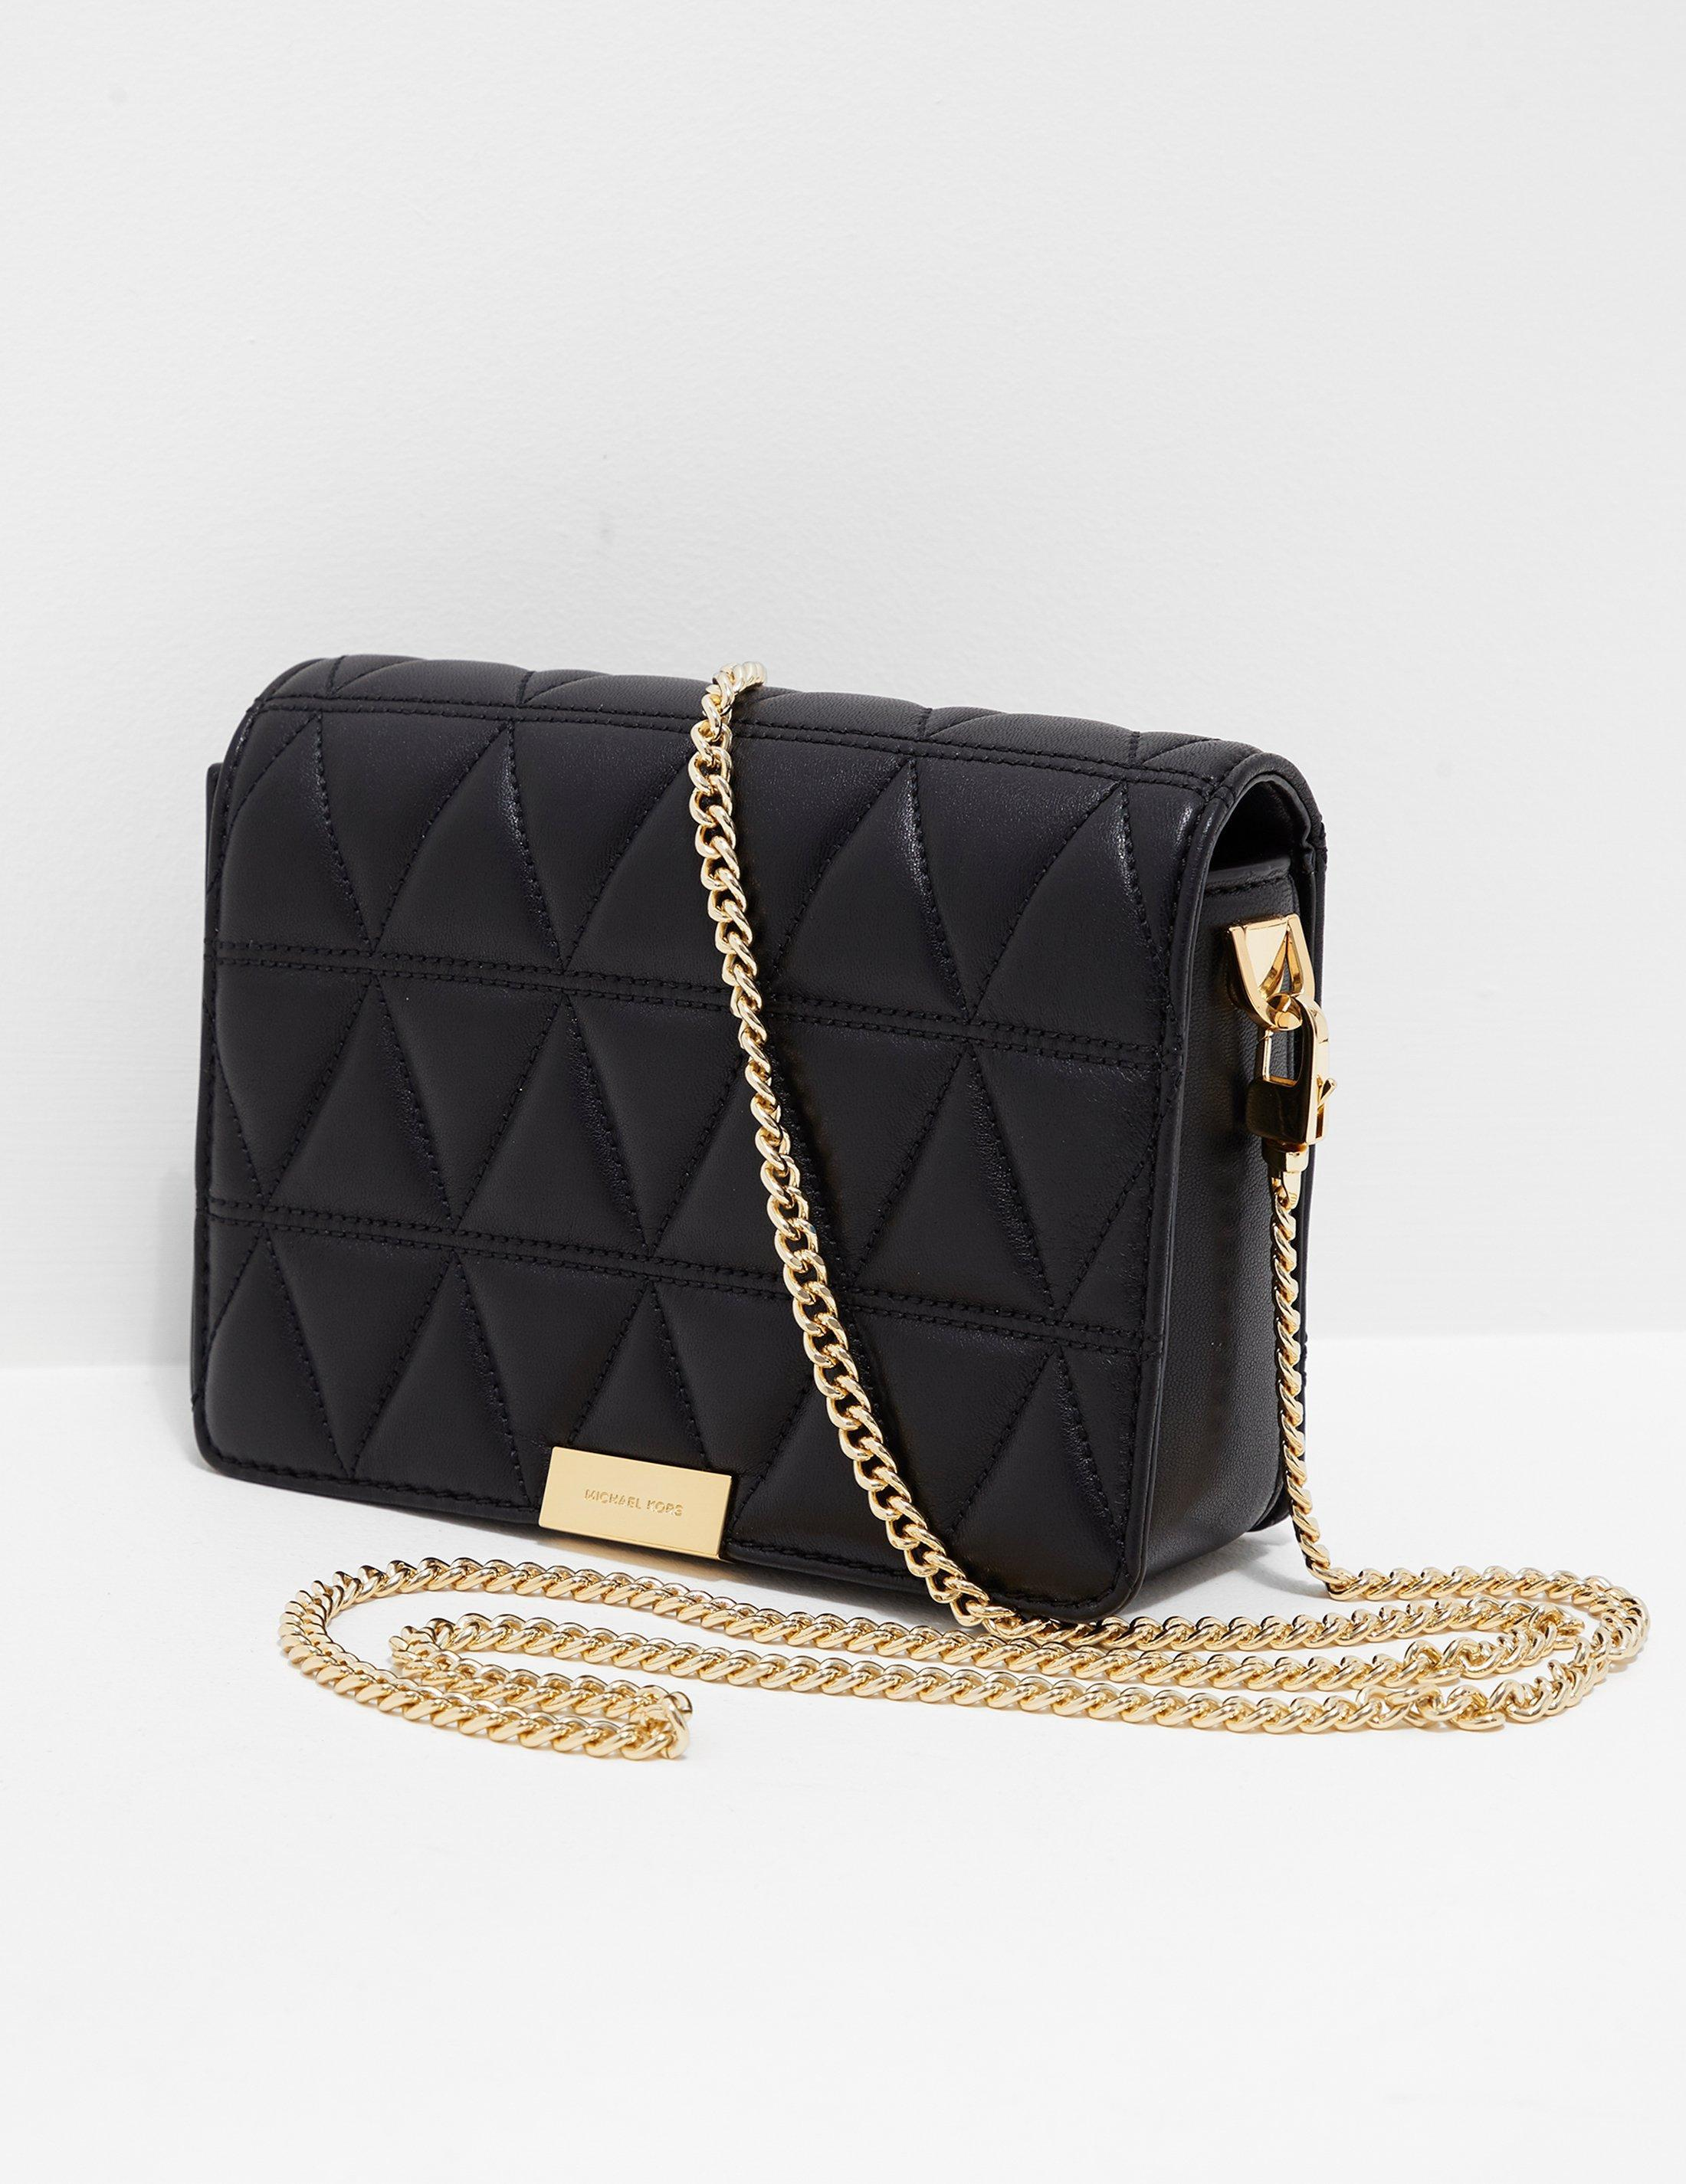 690221e435be ... sale lyst michael kors womens jade quilted clutch bag black gold in  black be97a e4fbc